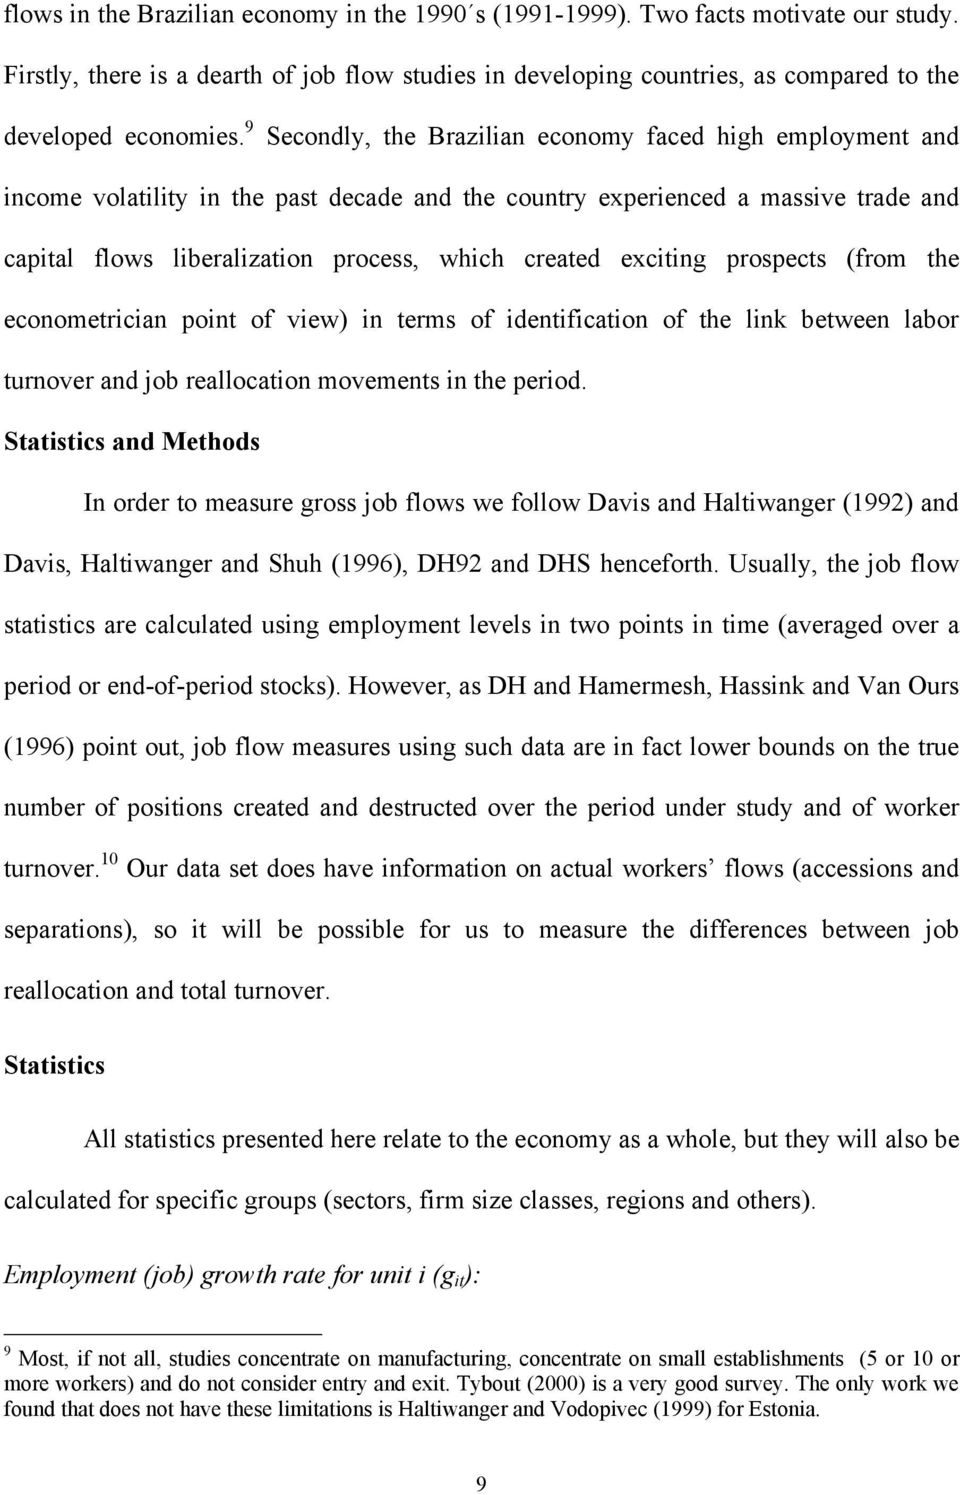 exciting prospects (from the econometrician point of view) in terms of identification of the link between labor turnover and job reallocation movements in the period.